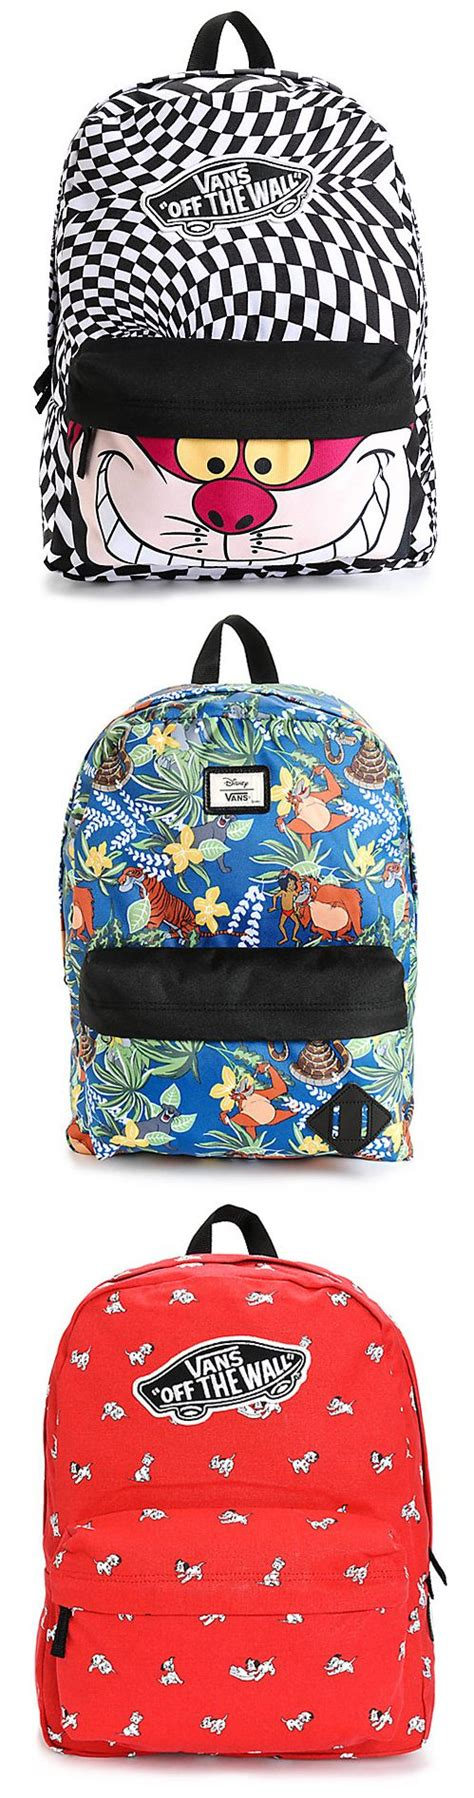 Harga Vans X Disney new disney x vans backpacks are here backpacks